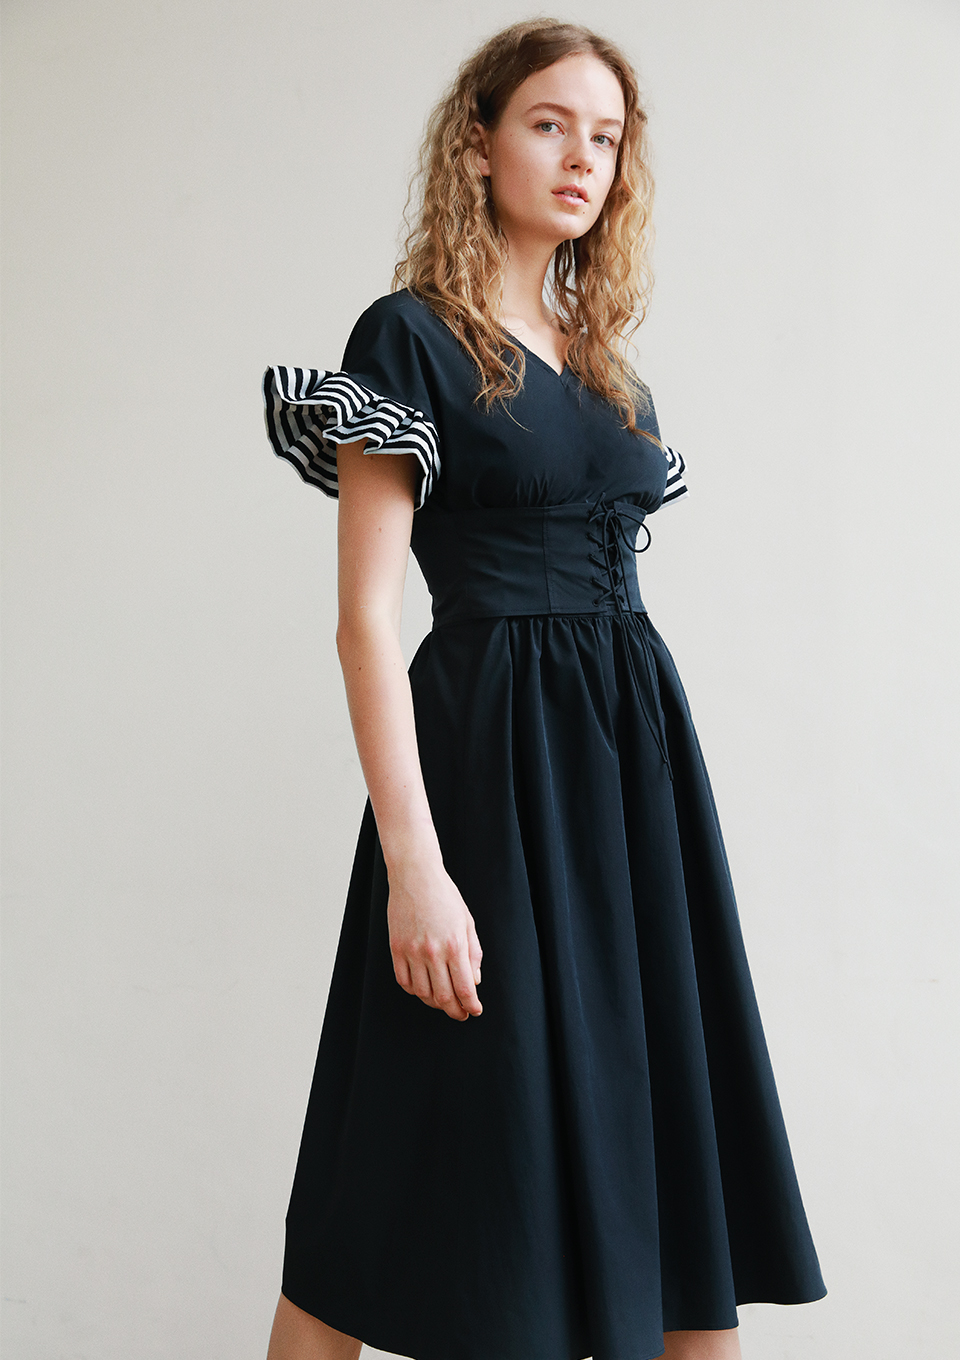 CORSETTE DRESS